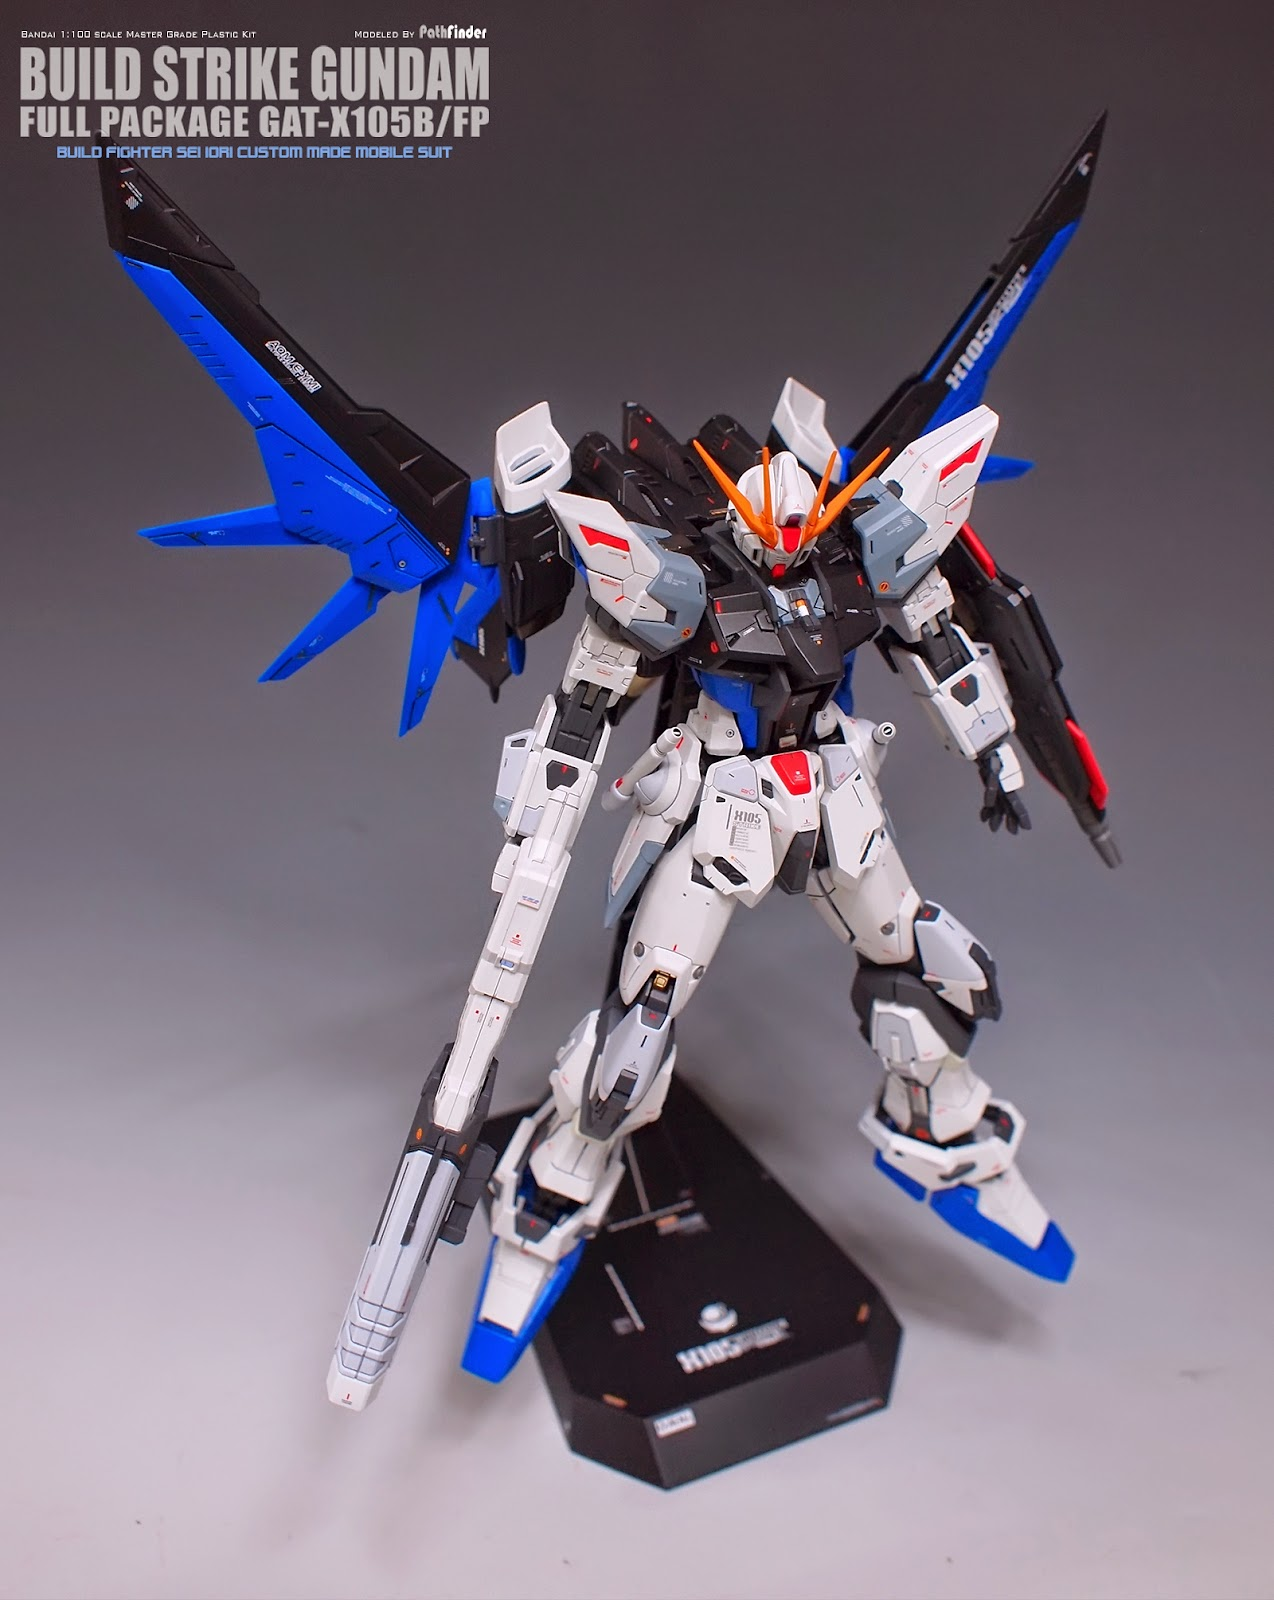 Custom Build: MG 1/100 Build Strike Gundam Full Package